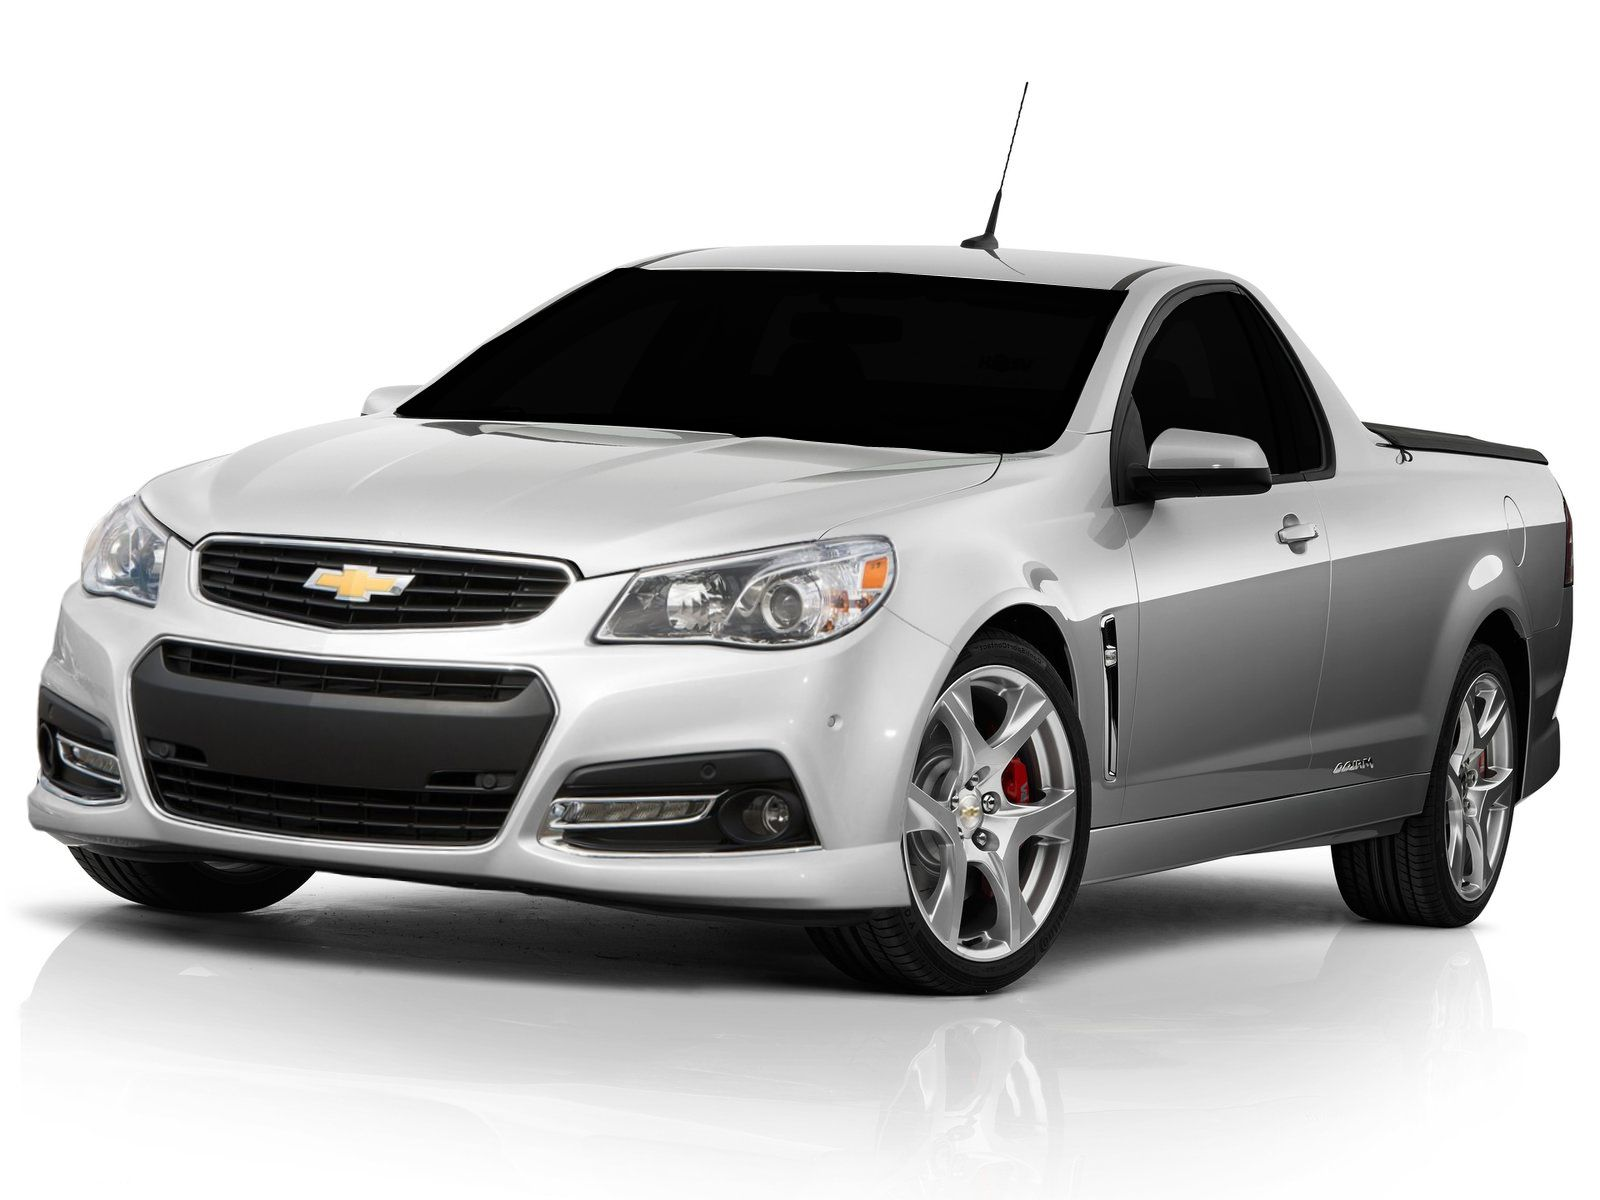 2015 2017 2016 Chevy El Camino concept will have best mileage